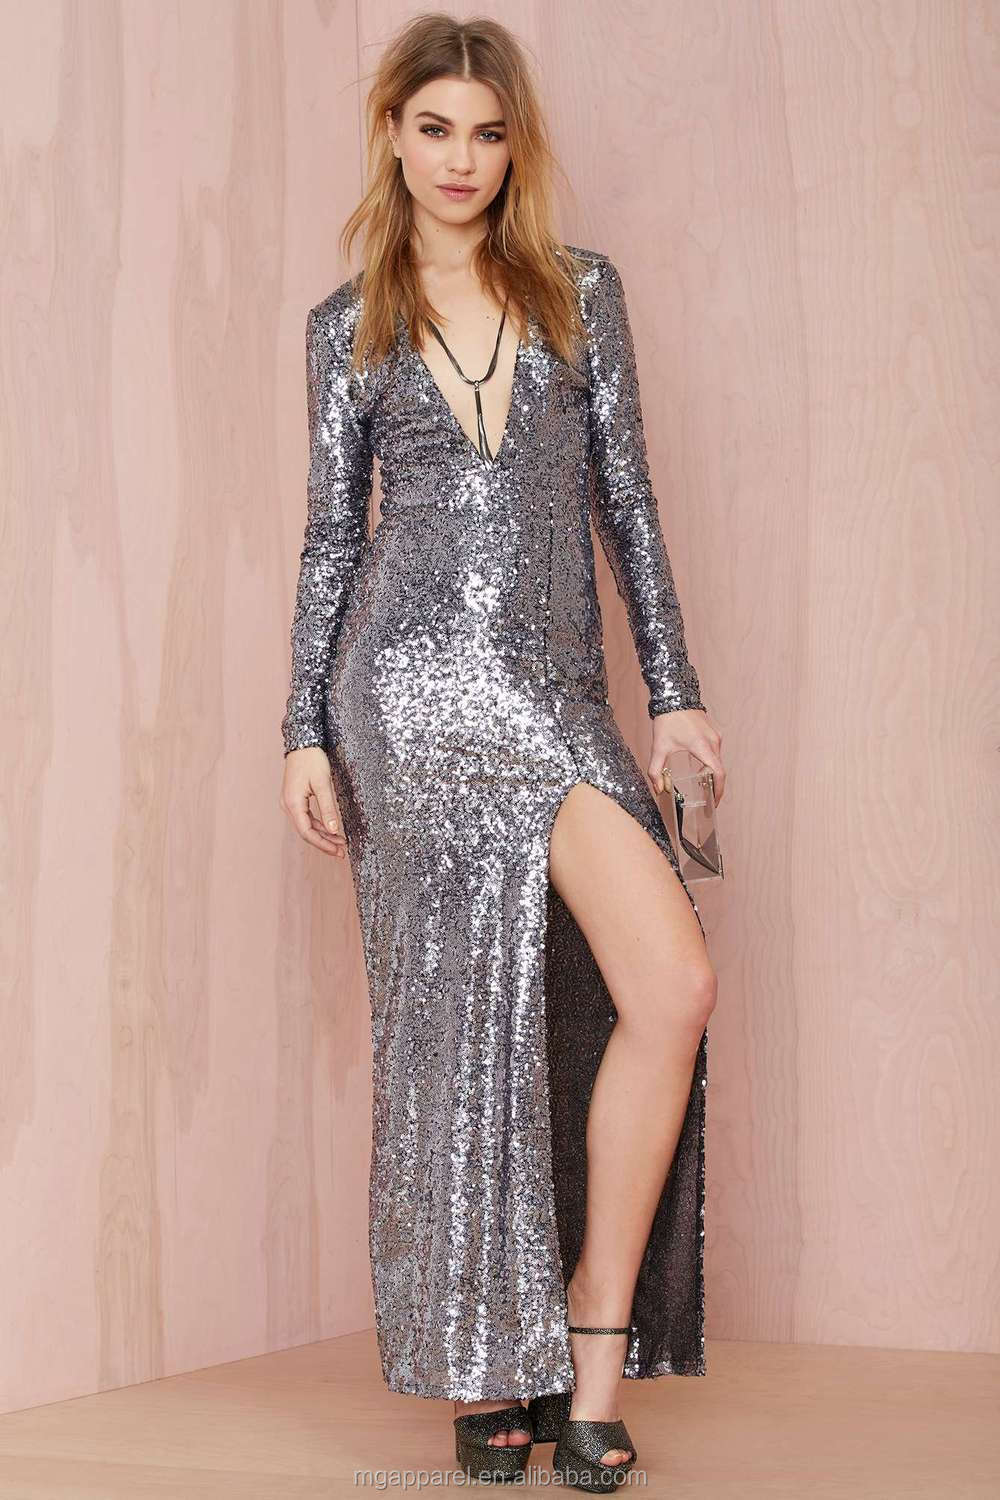 Where can i buy a sequin dress